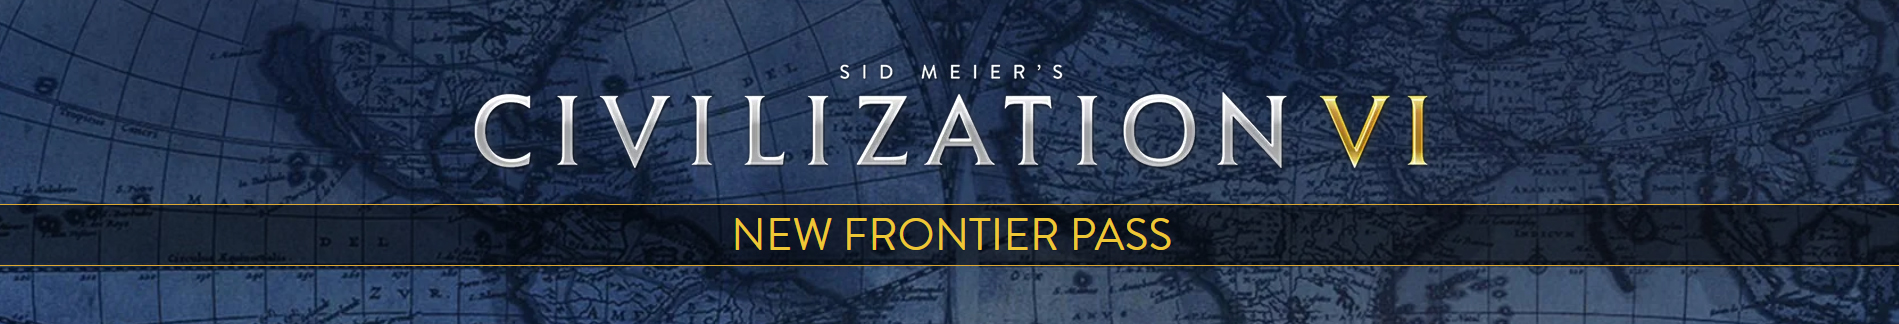 Civilization VI: New Frontier Pass. Image Credit: Firaxis Games.